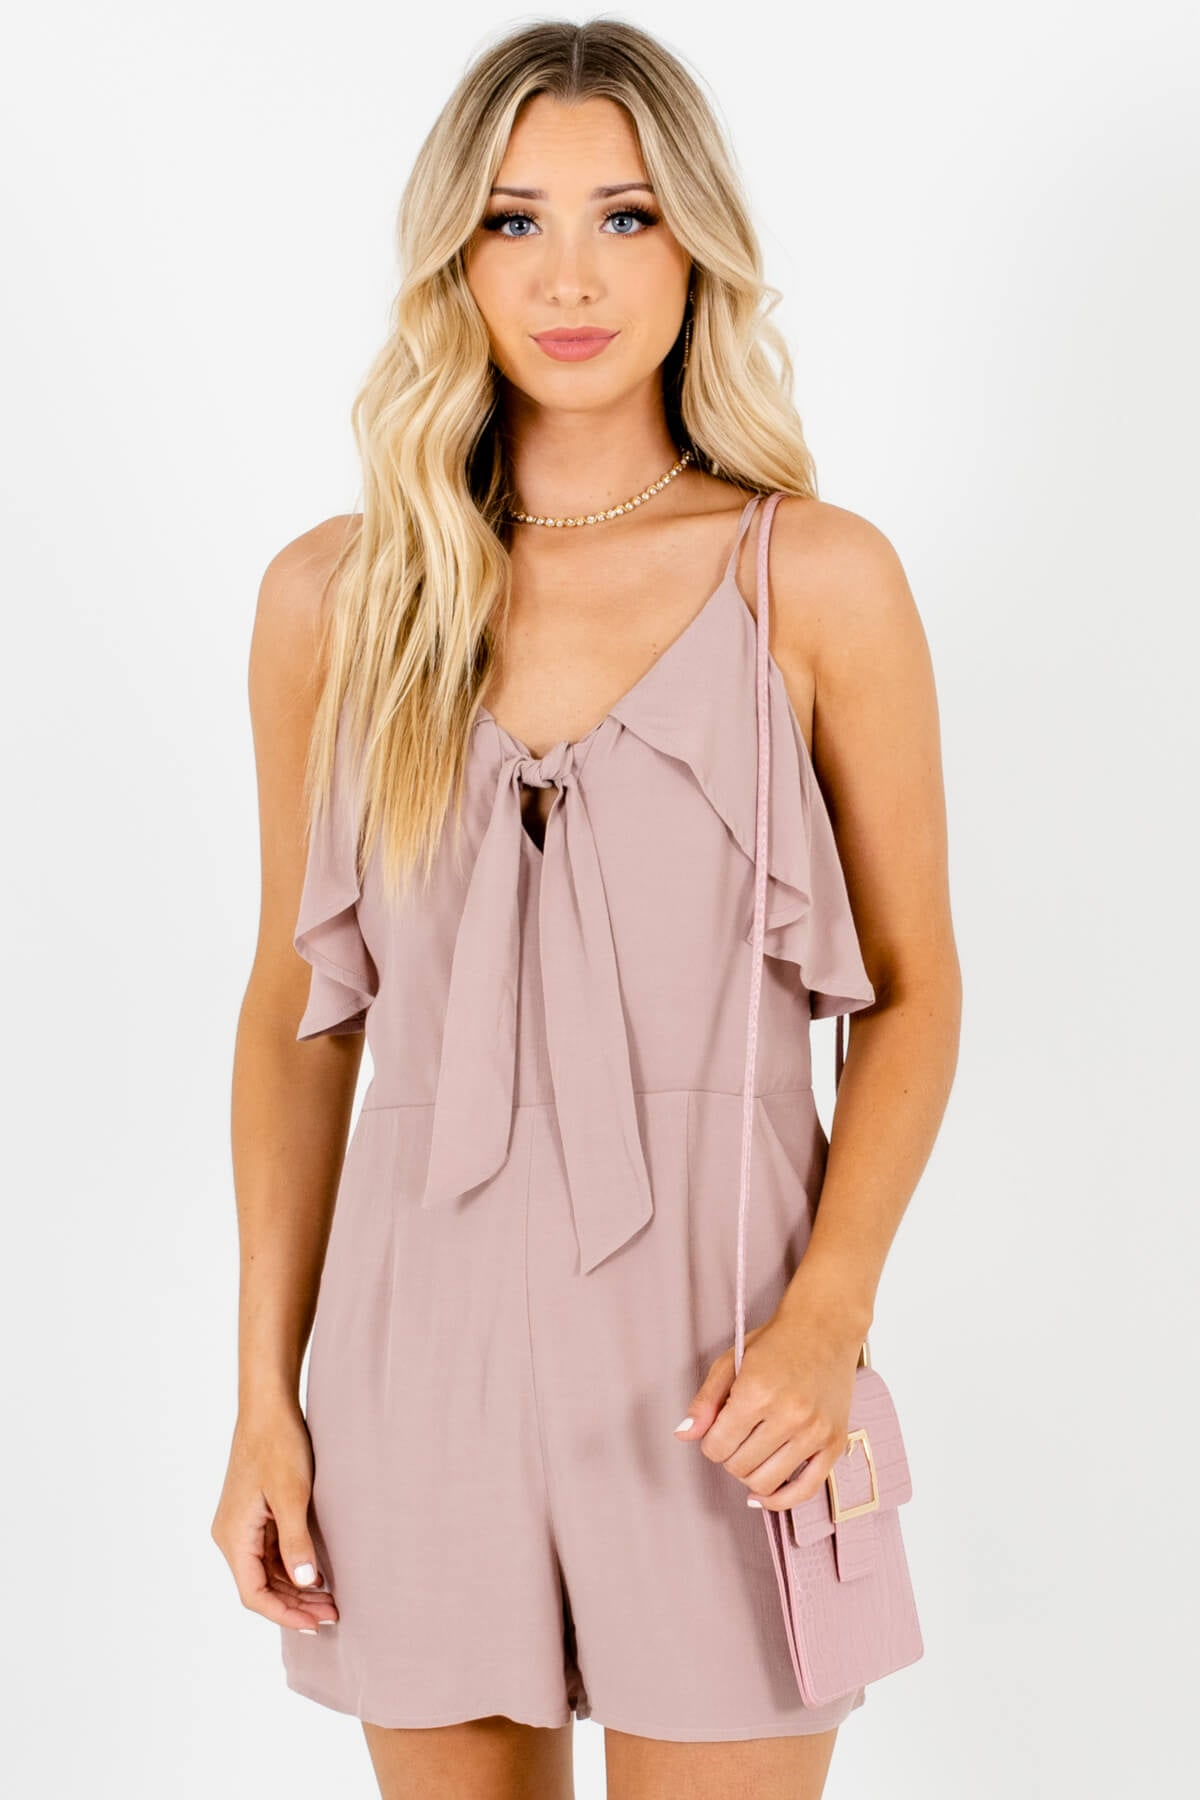 Taupe Pink Tie-Front Ruffle Rompers Affordable Online Boutique